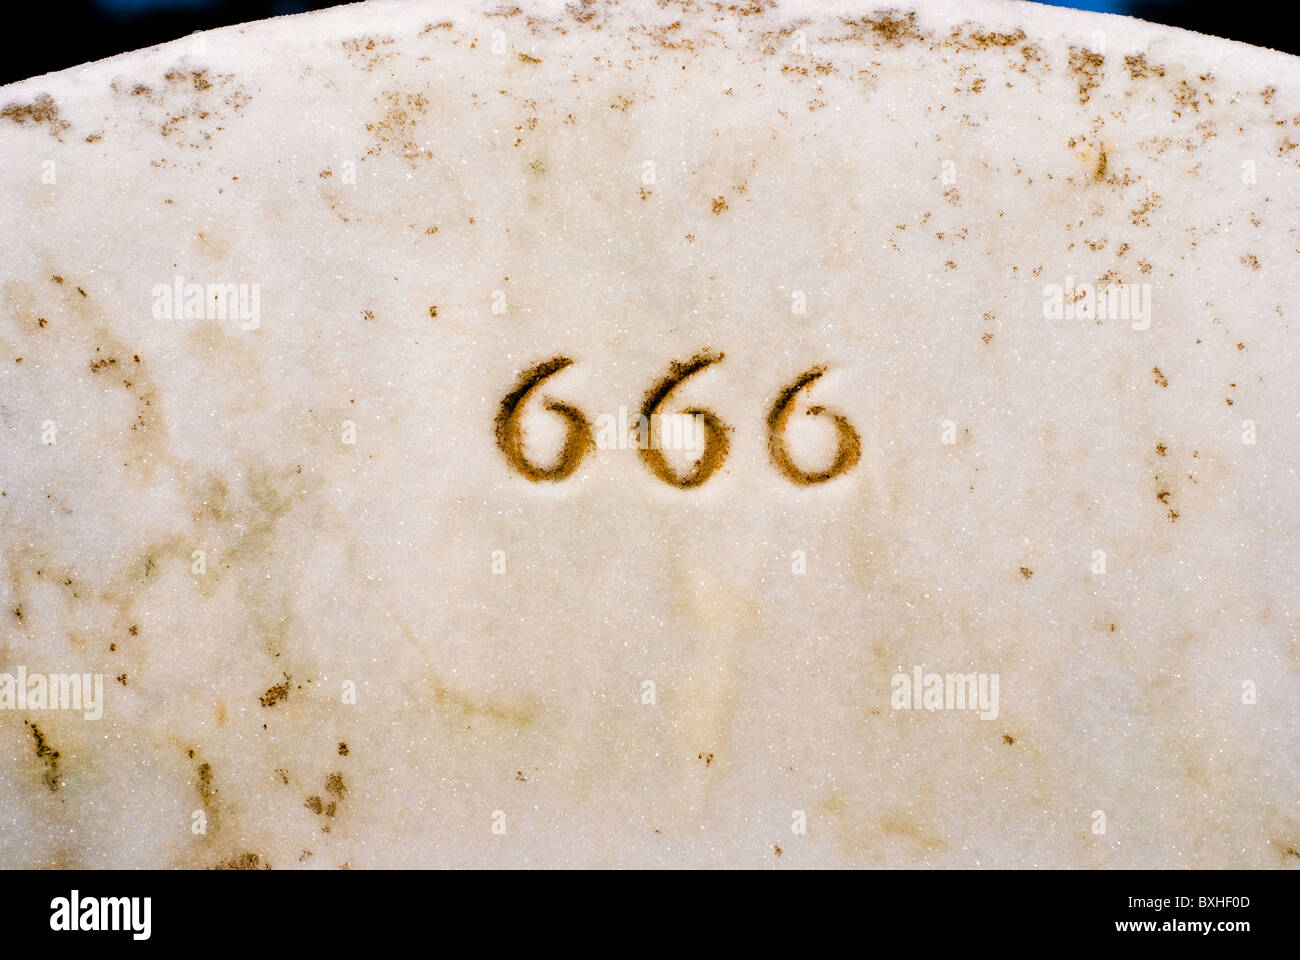 Closeup of 666 engraved in headstone Stock Photo